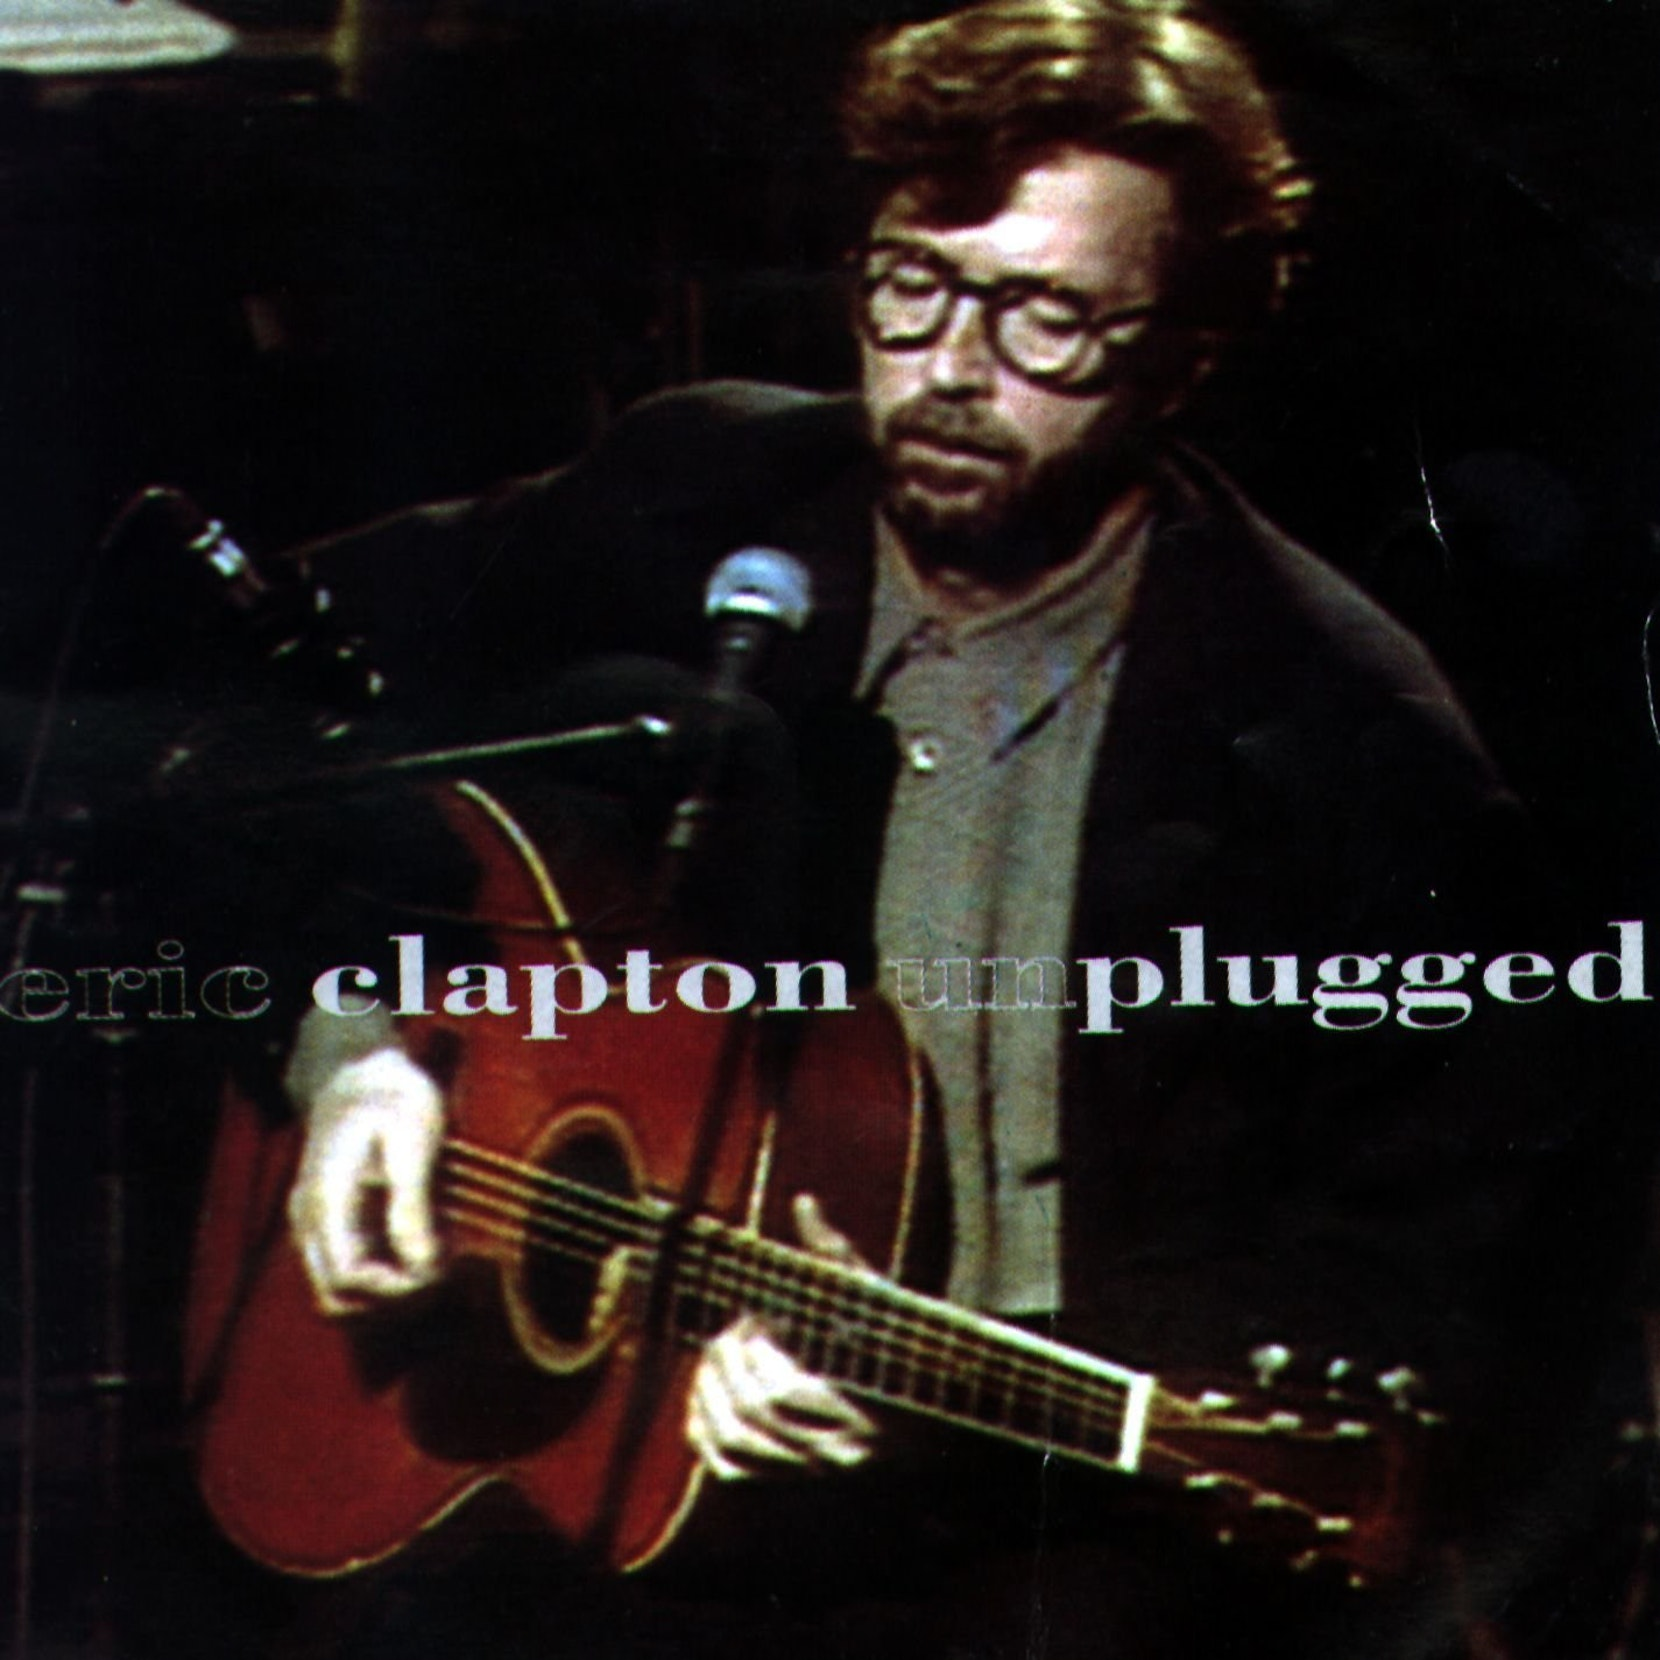 The 10 best mtv unplugged albums to own on vinylc vinyl me although often overlooked jays mtv unplugged session is one of the series most intriguing as the rapper manages to recreate his songs without losing any malvernweather Gallery